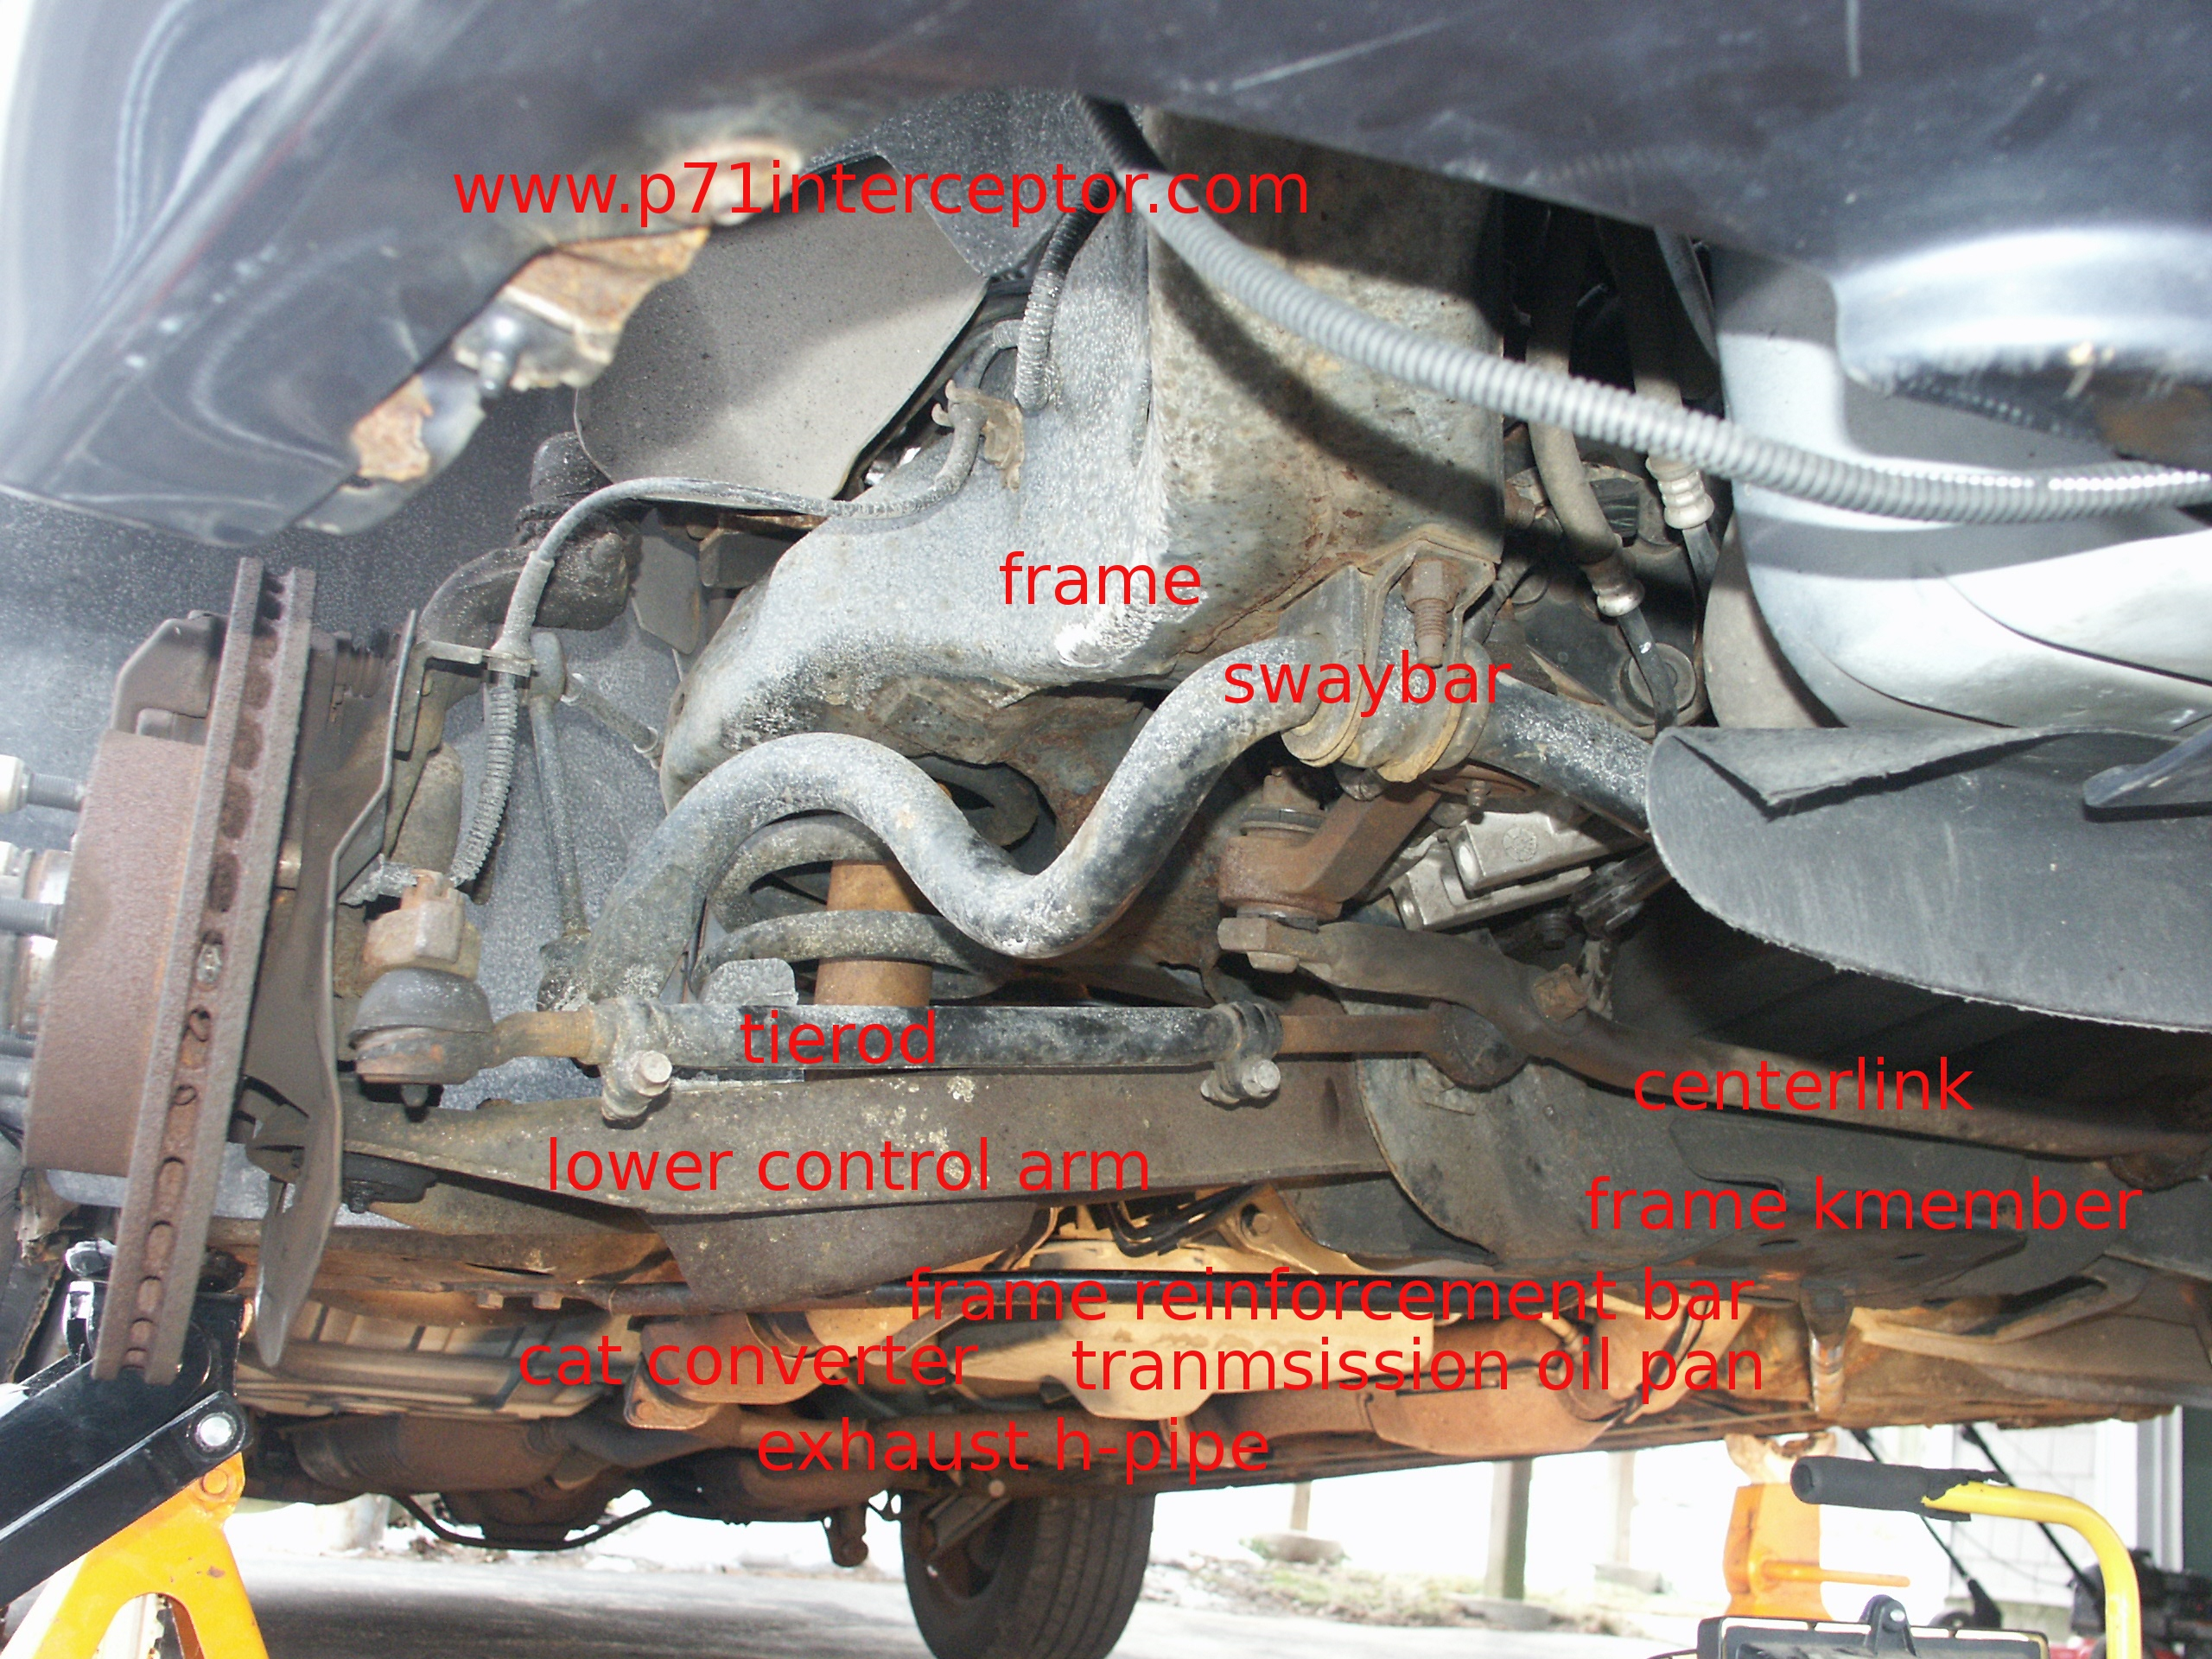 Rear drum diagram additionally 971787 Sliding Door Parts 6 moreover Ford Explorer 2001 Power Seats Wiring Diagram moreover 2005 also 252004768973. on 1997 ford explorer side